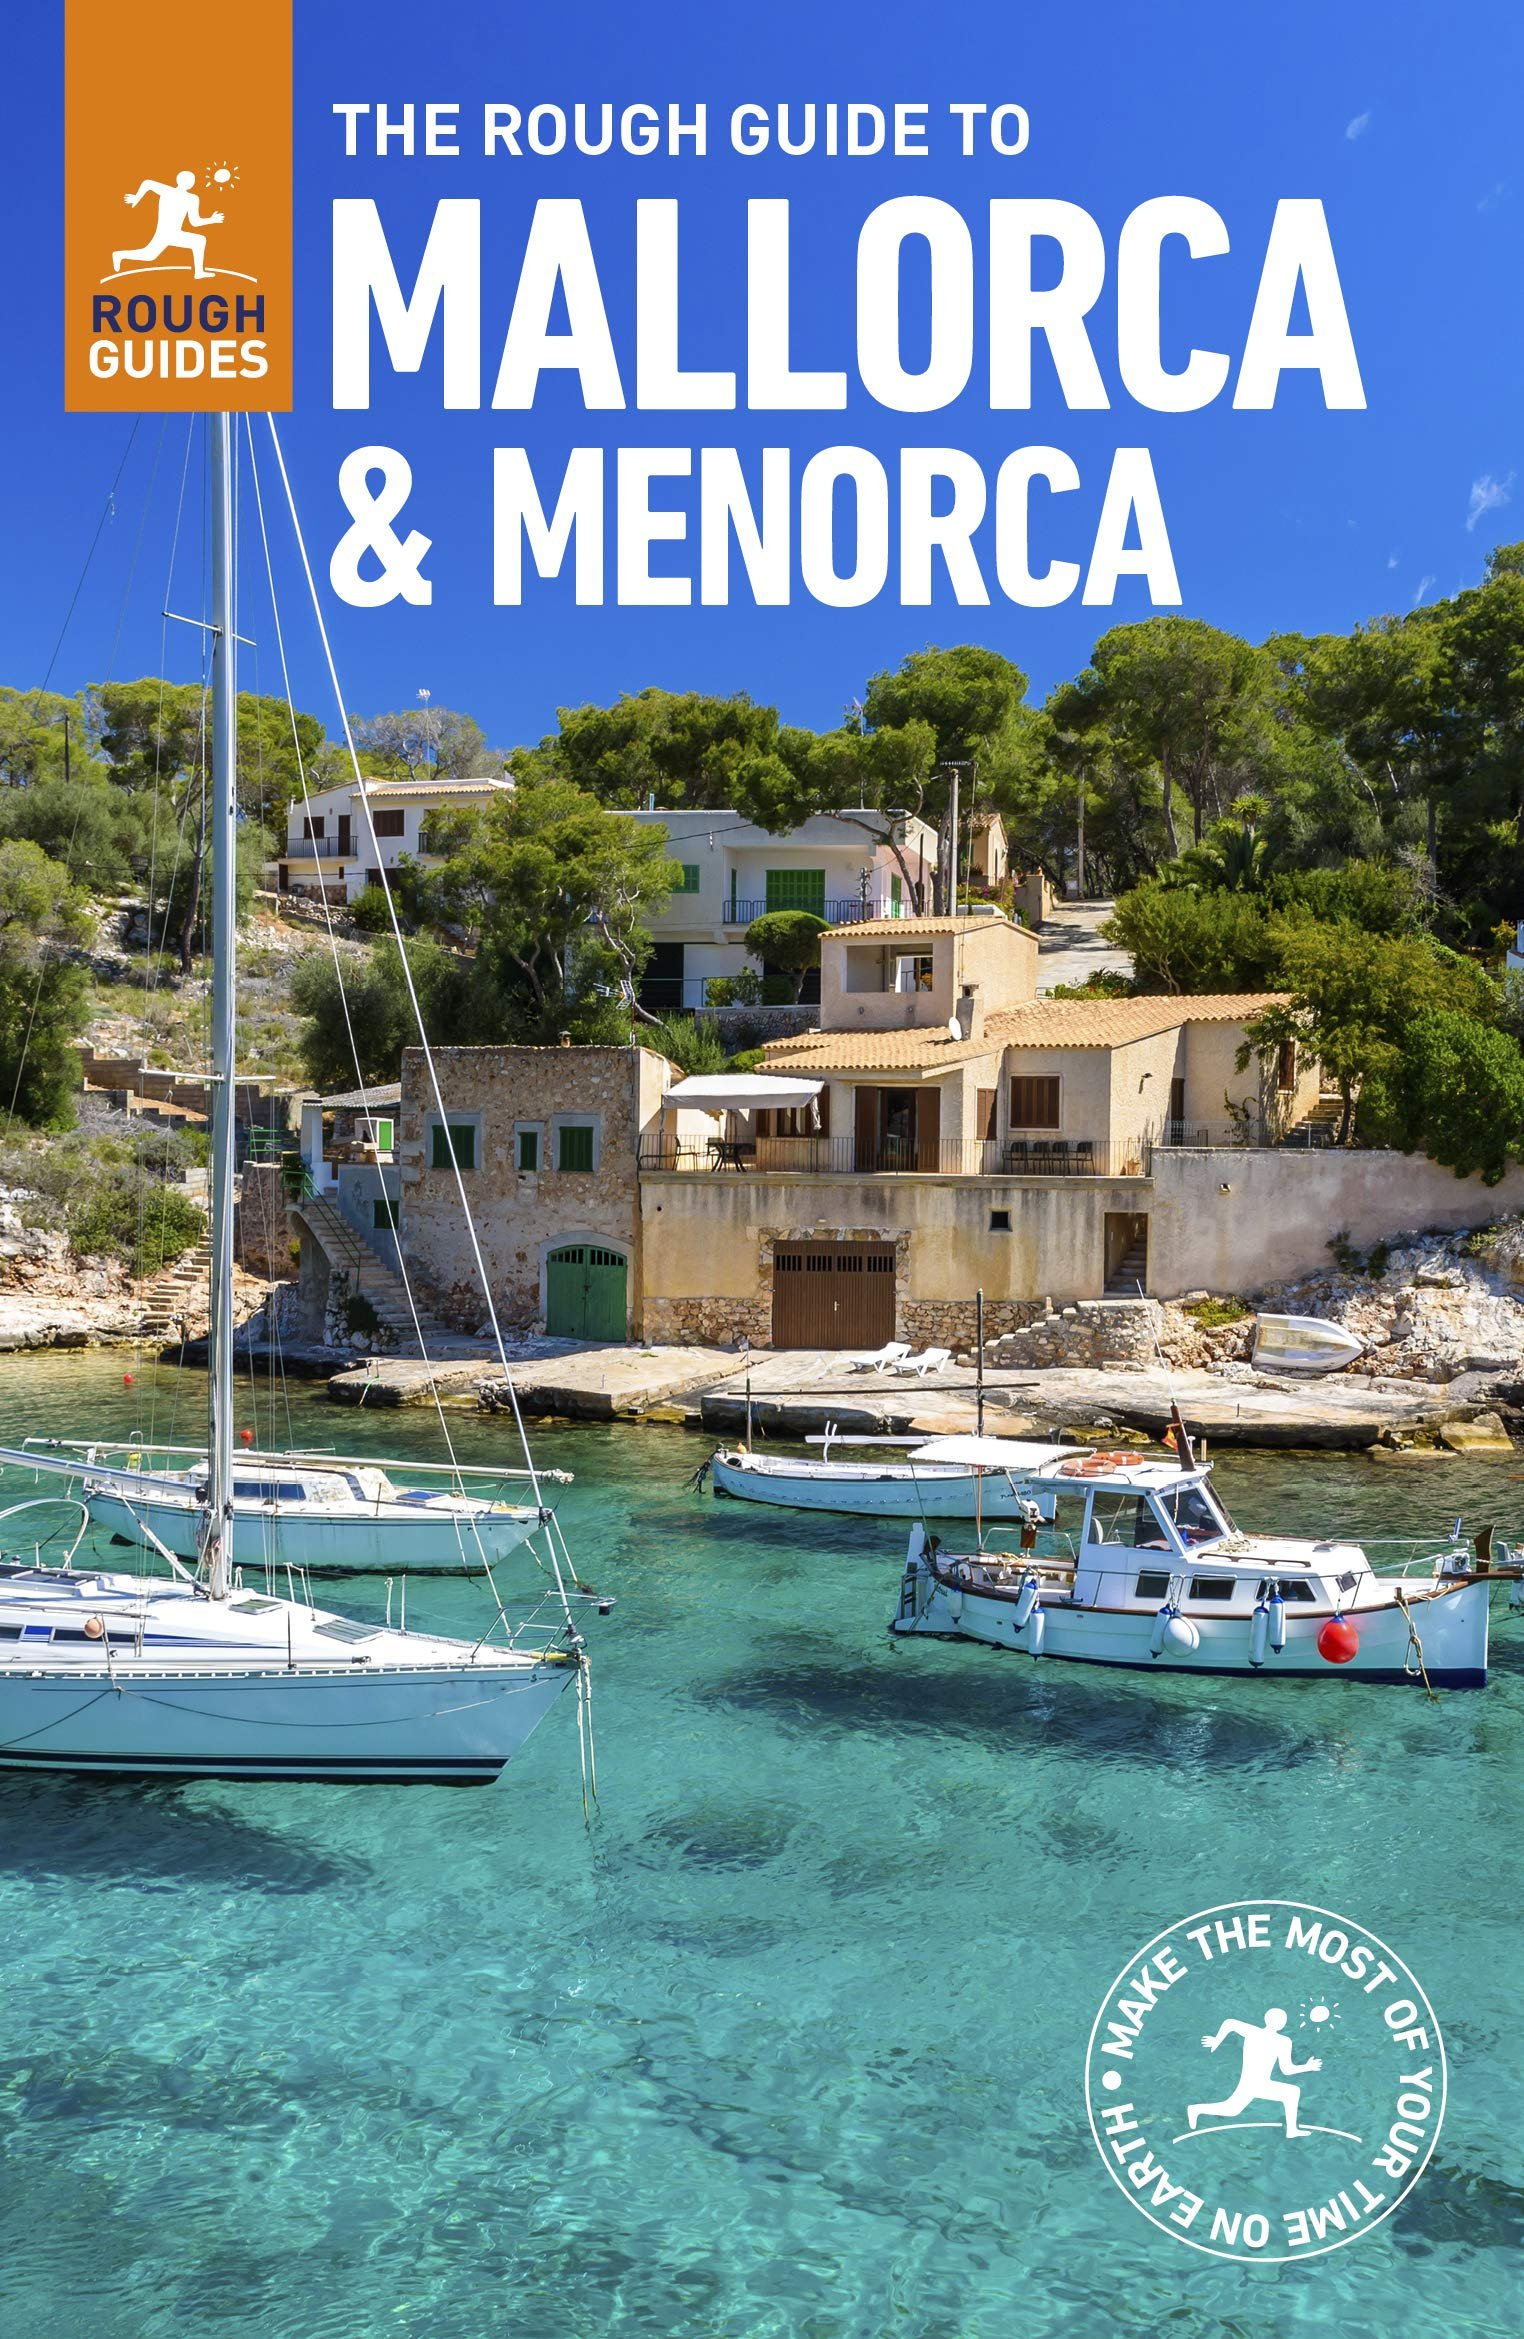 Rough Guide Mallorca + Menorca 9781789194128  Rough Guide Rough Guides  Reisgidsen Mallorca